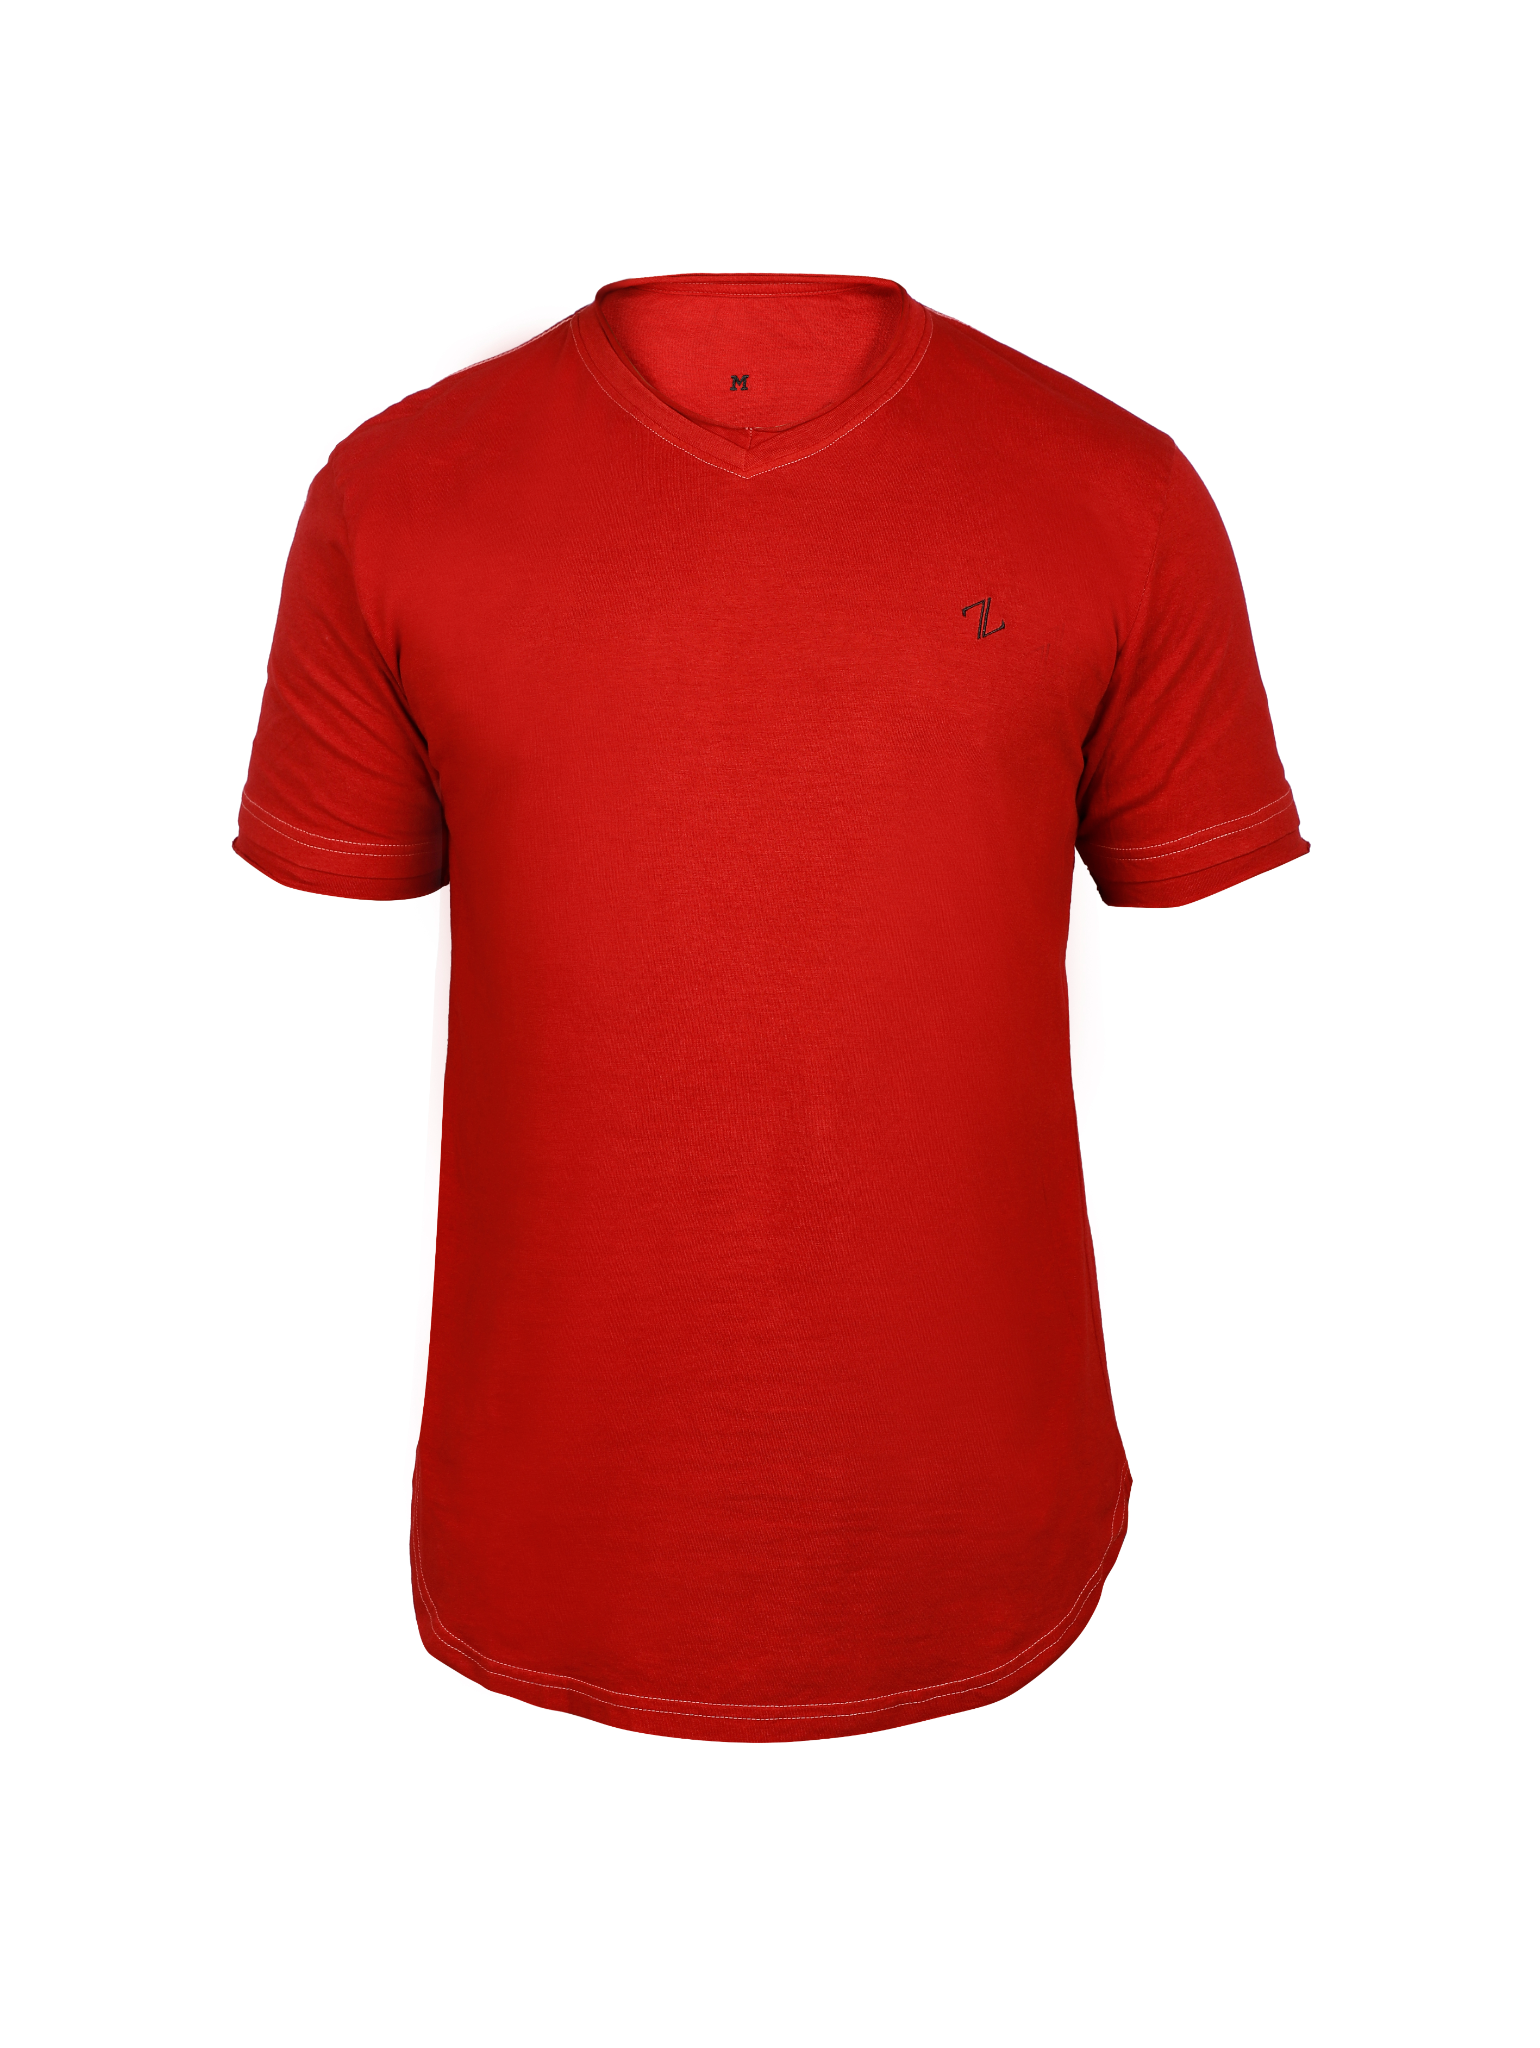 Mens Lac Red Tee